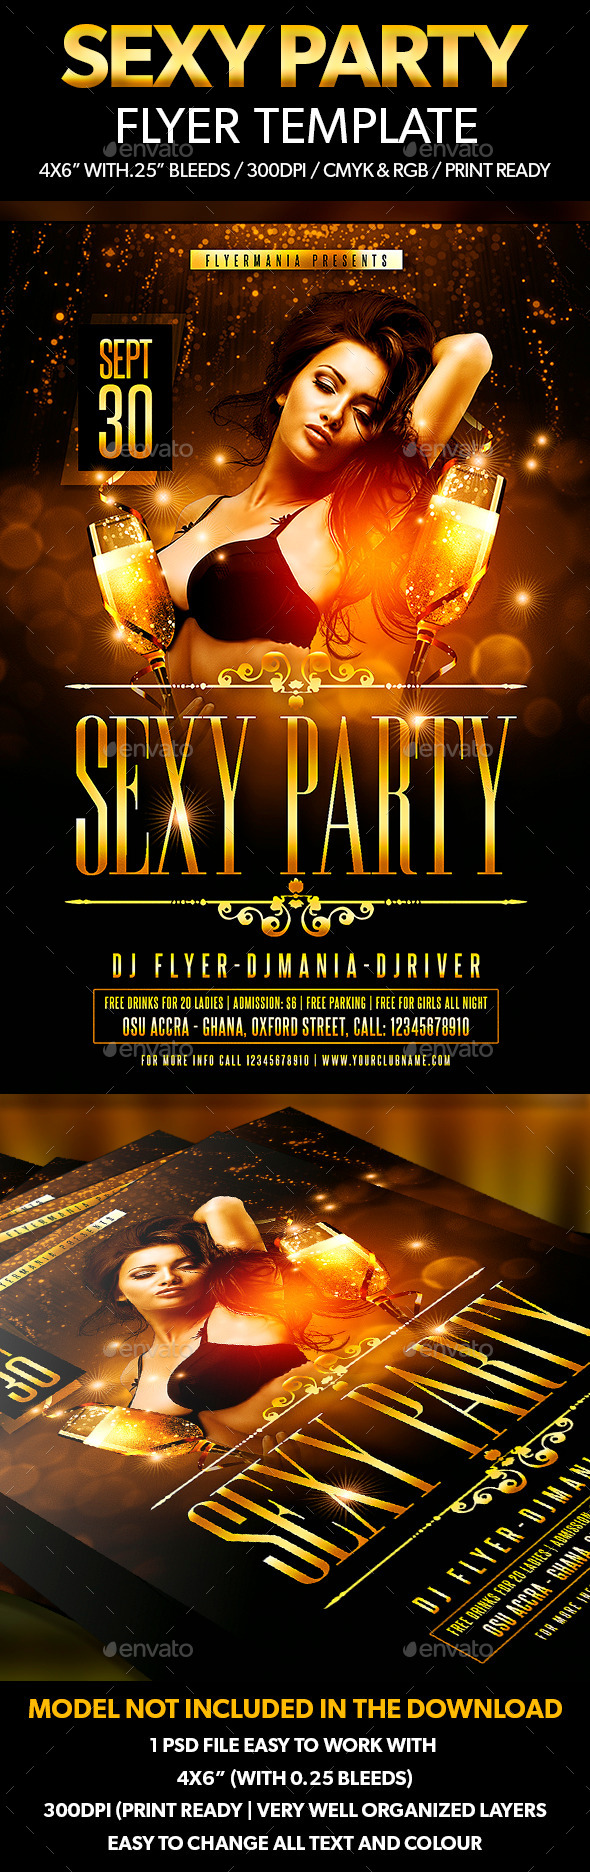 Sexy Party Flyer Template - Flyers Print Templates